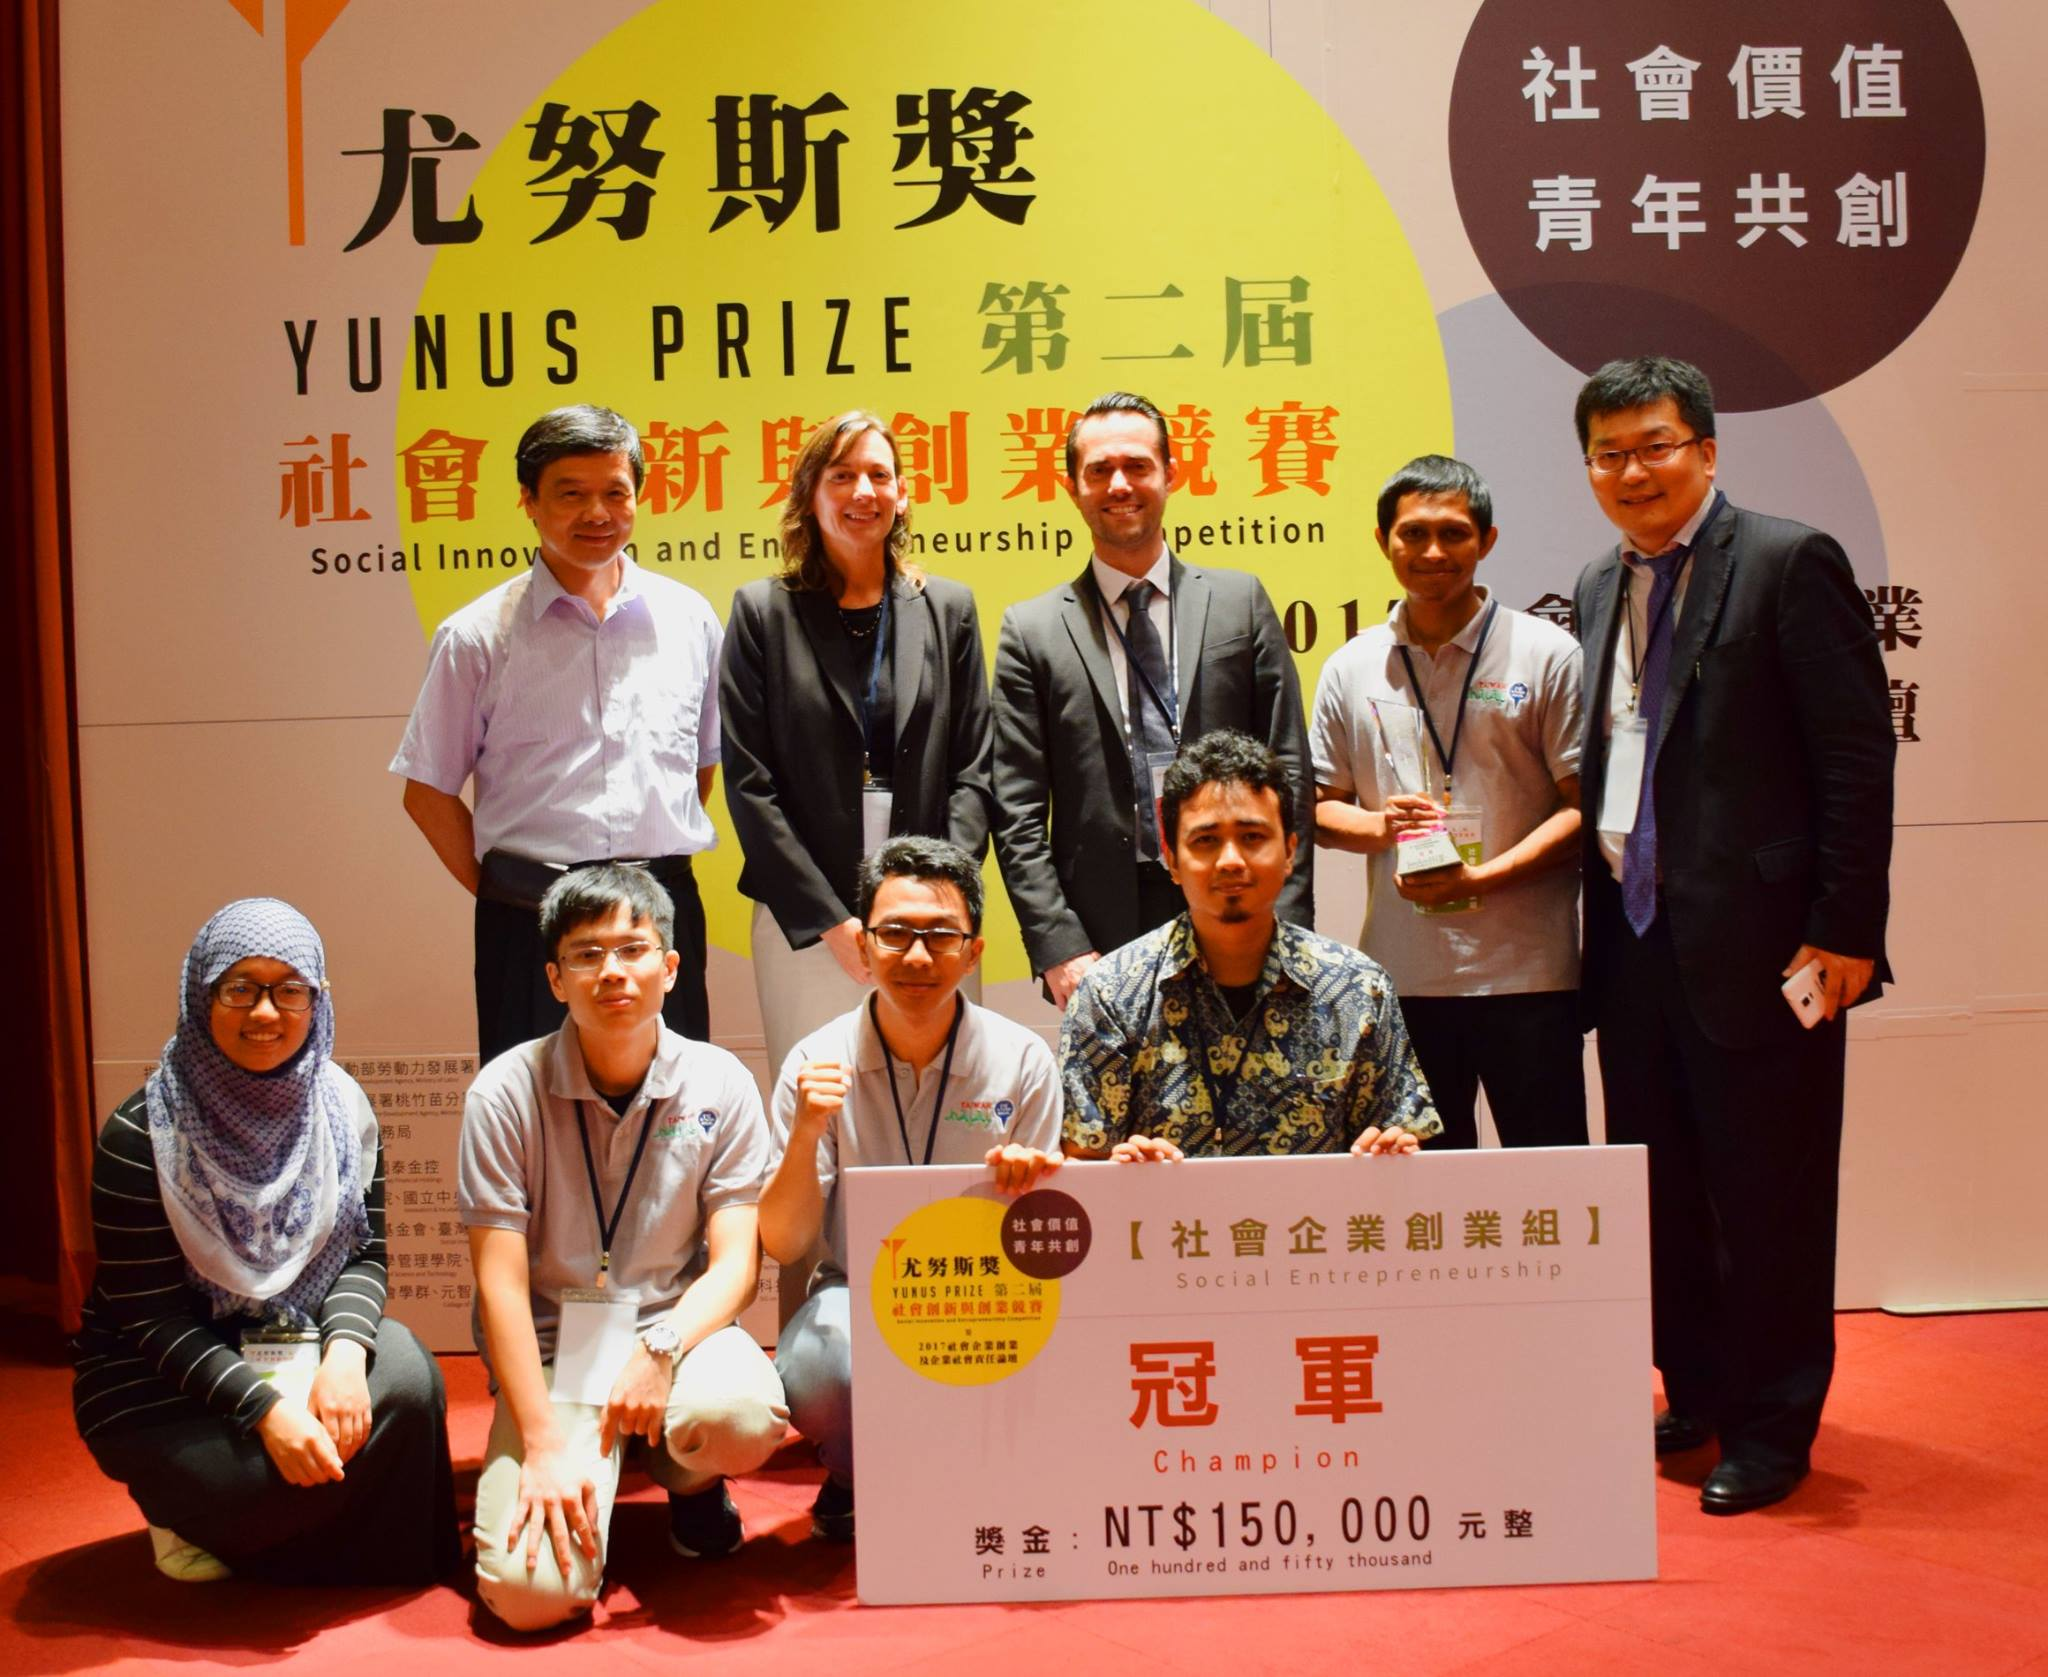 Taiwan Halal won Yunus Prize Social Business Competition 2017